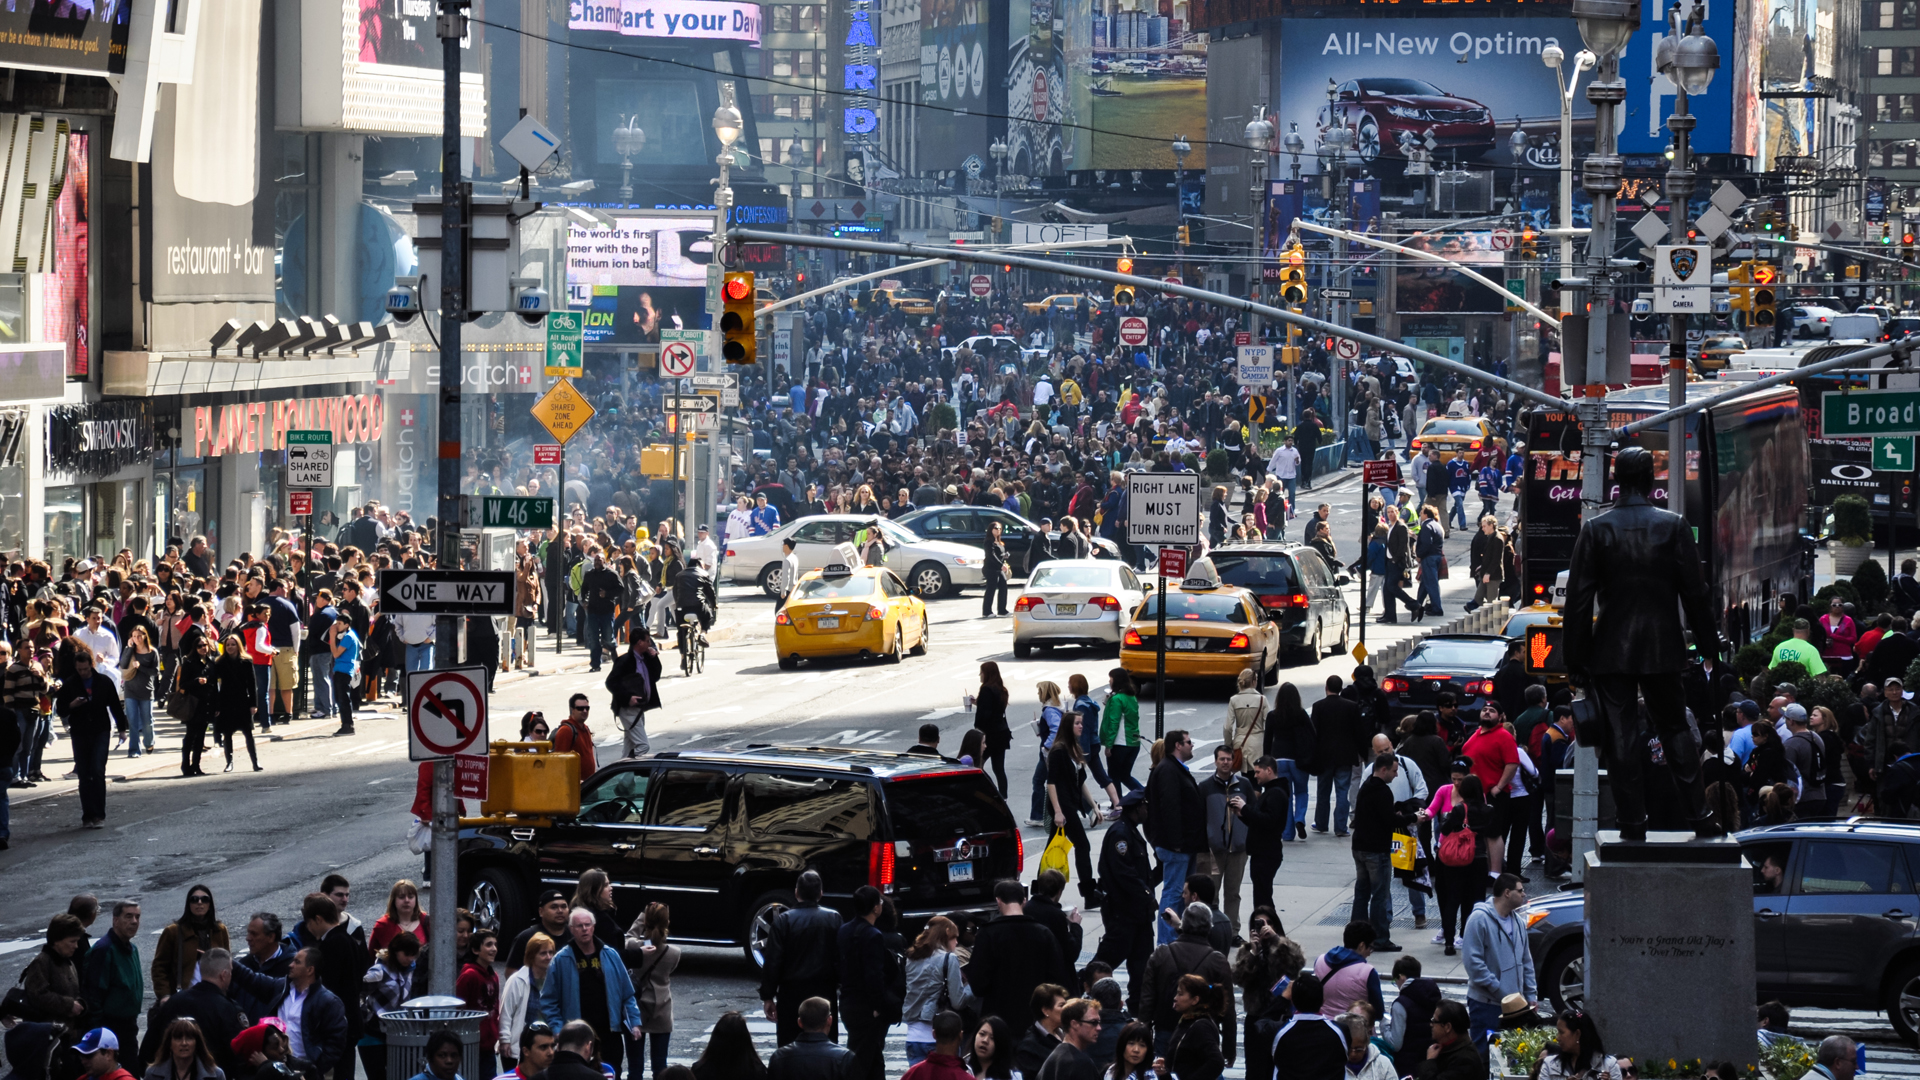 A file photo showing crowds of people in New York City's Times Square. (Credit: iStock / Getty Images Plus)